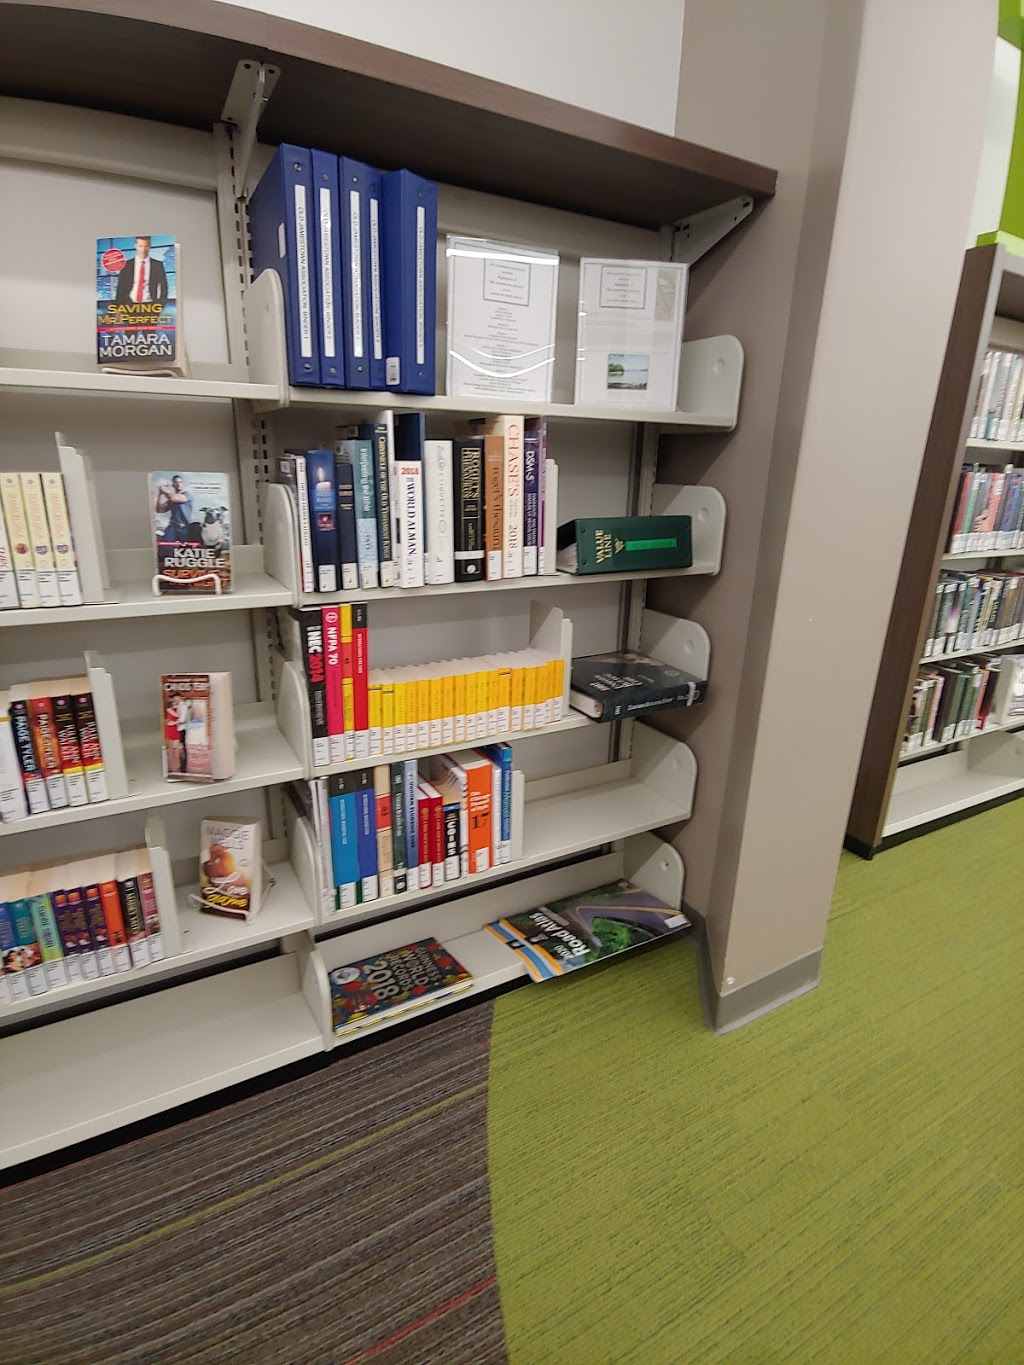 St Louis County Library–Jamestown Bluffs Branch - library  | Photo 4 of 7 | Address: 4153 N Hwy 67, Florissant, MO 63034, USA | Phone: (314) 994-3300